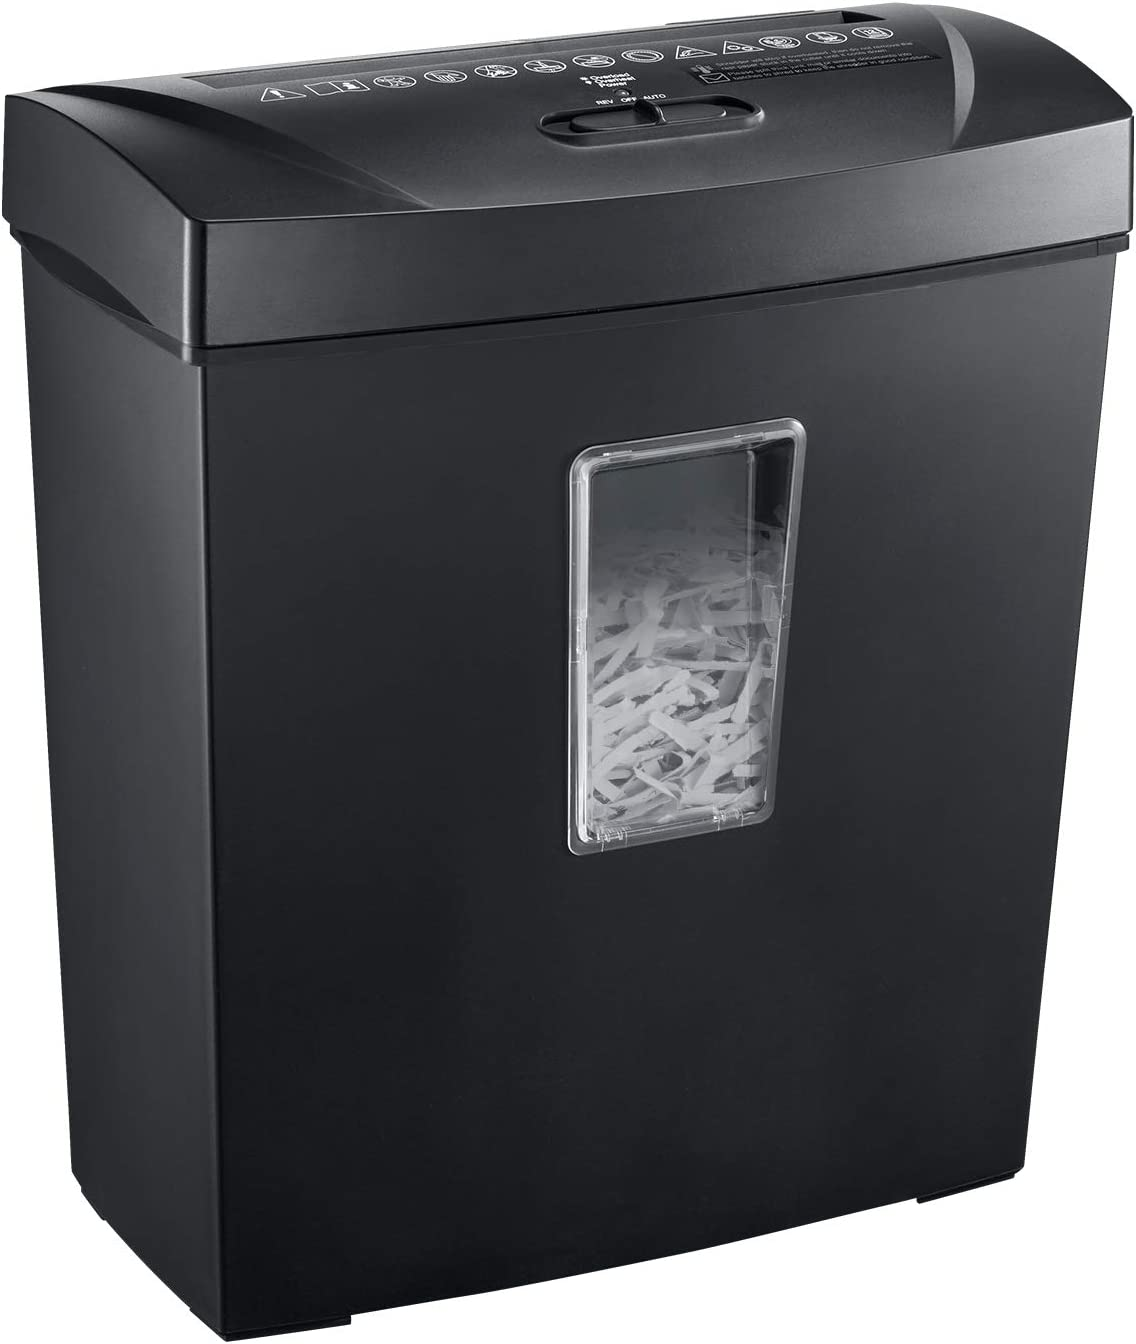 Bonsaii Paper Shredder, 12 Sheet Cross Cut Document and Credit Card Shredder for Home Use, Black(C170-C)